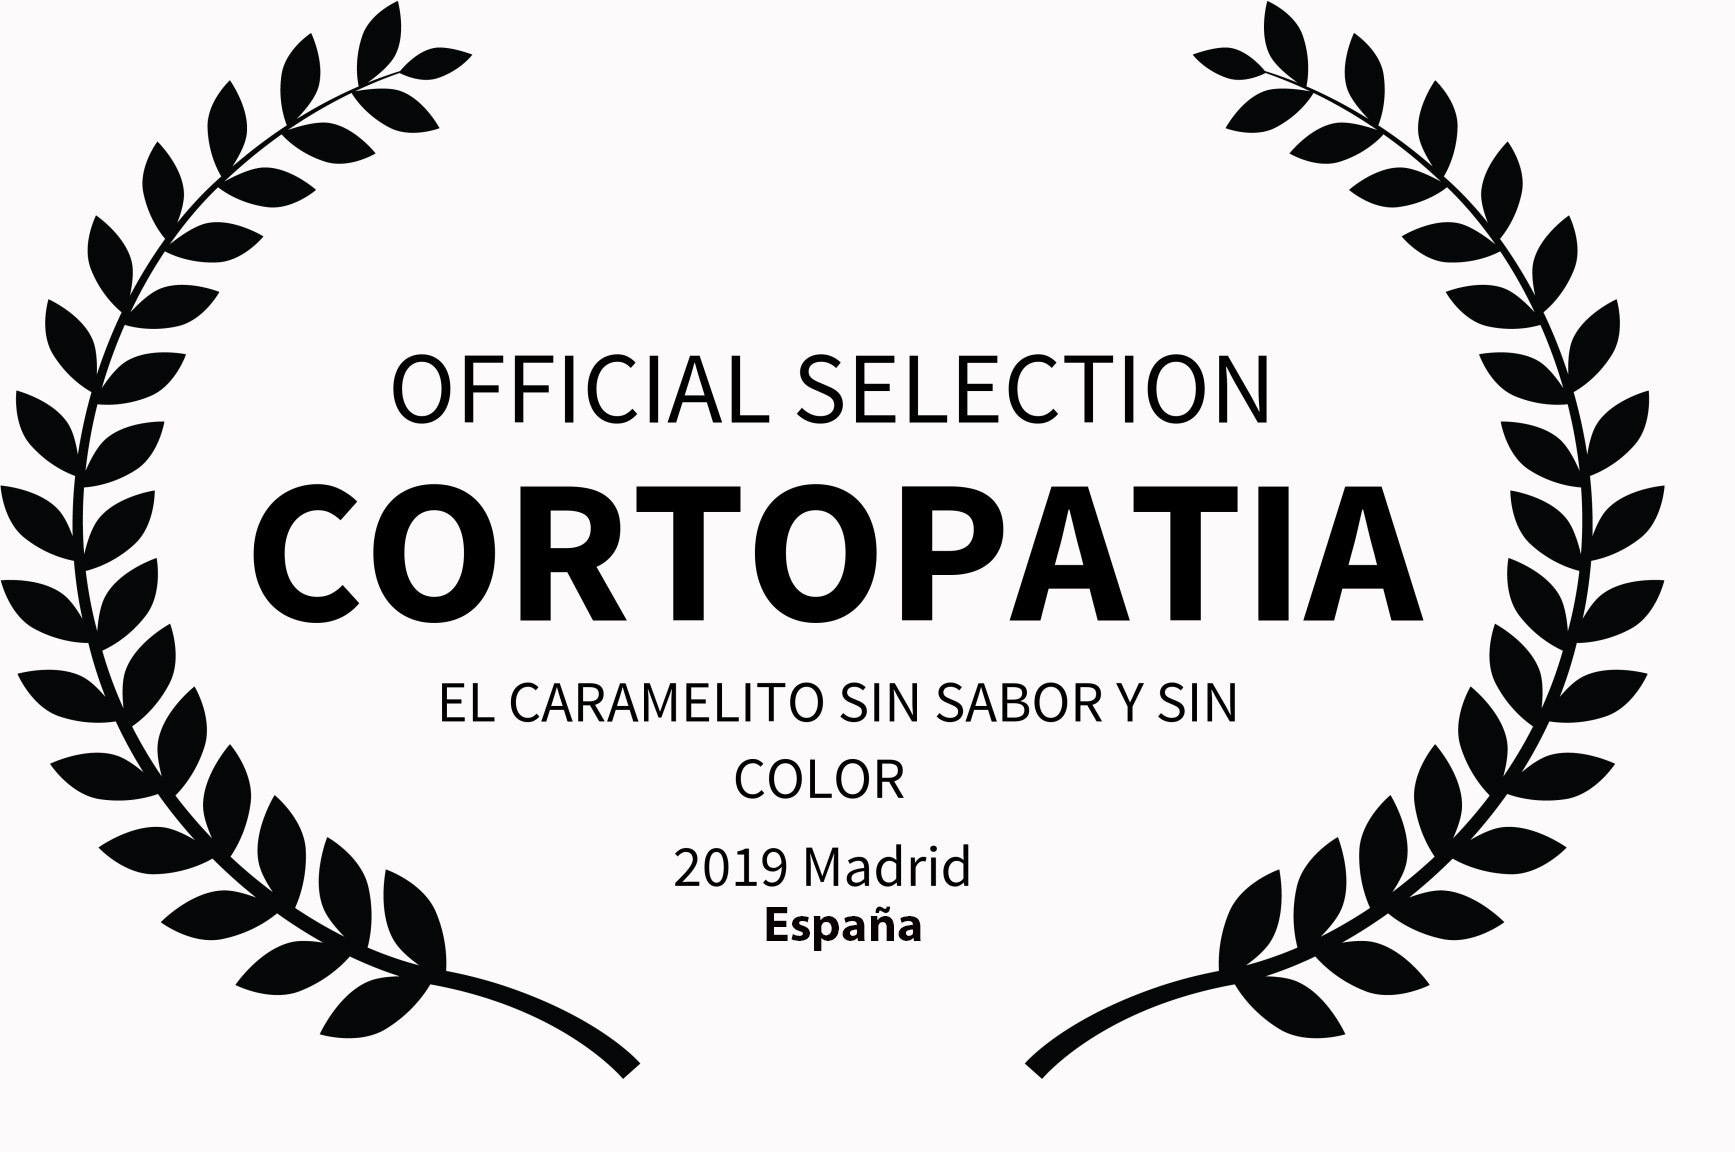 OFFICIAL SELECTION - CORTOPATIA -  EL CA